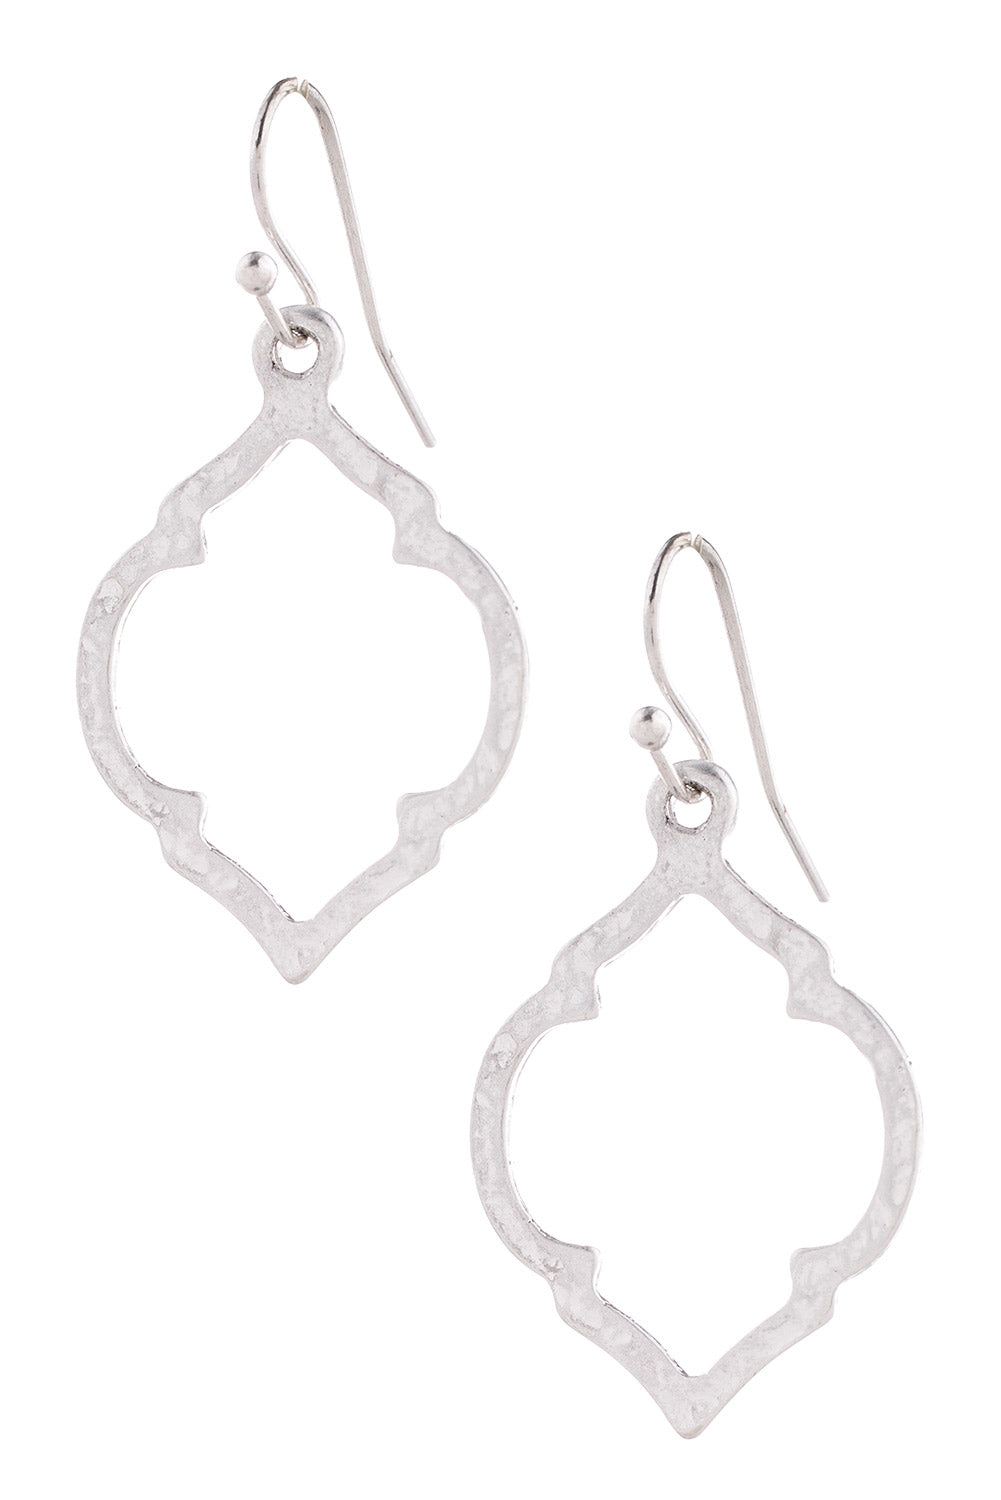 Type 2 Forgotten Path Earrings